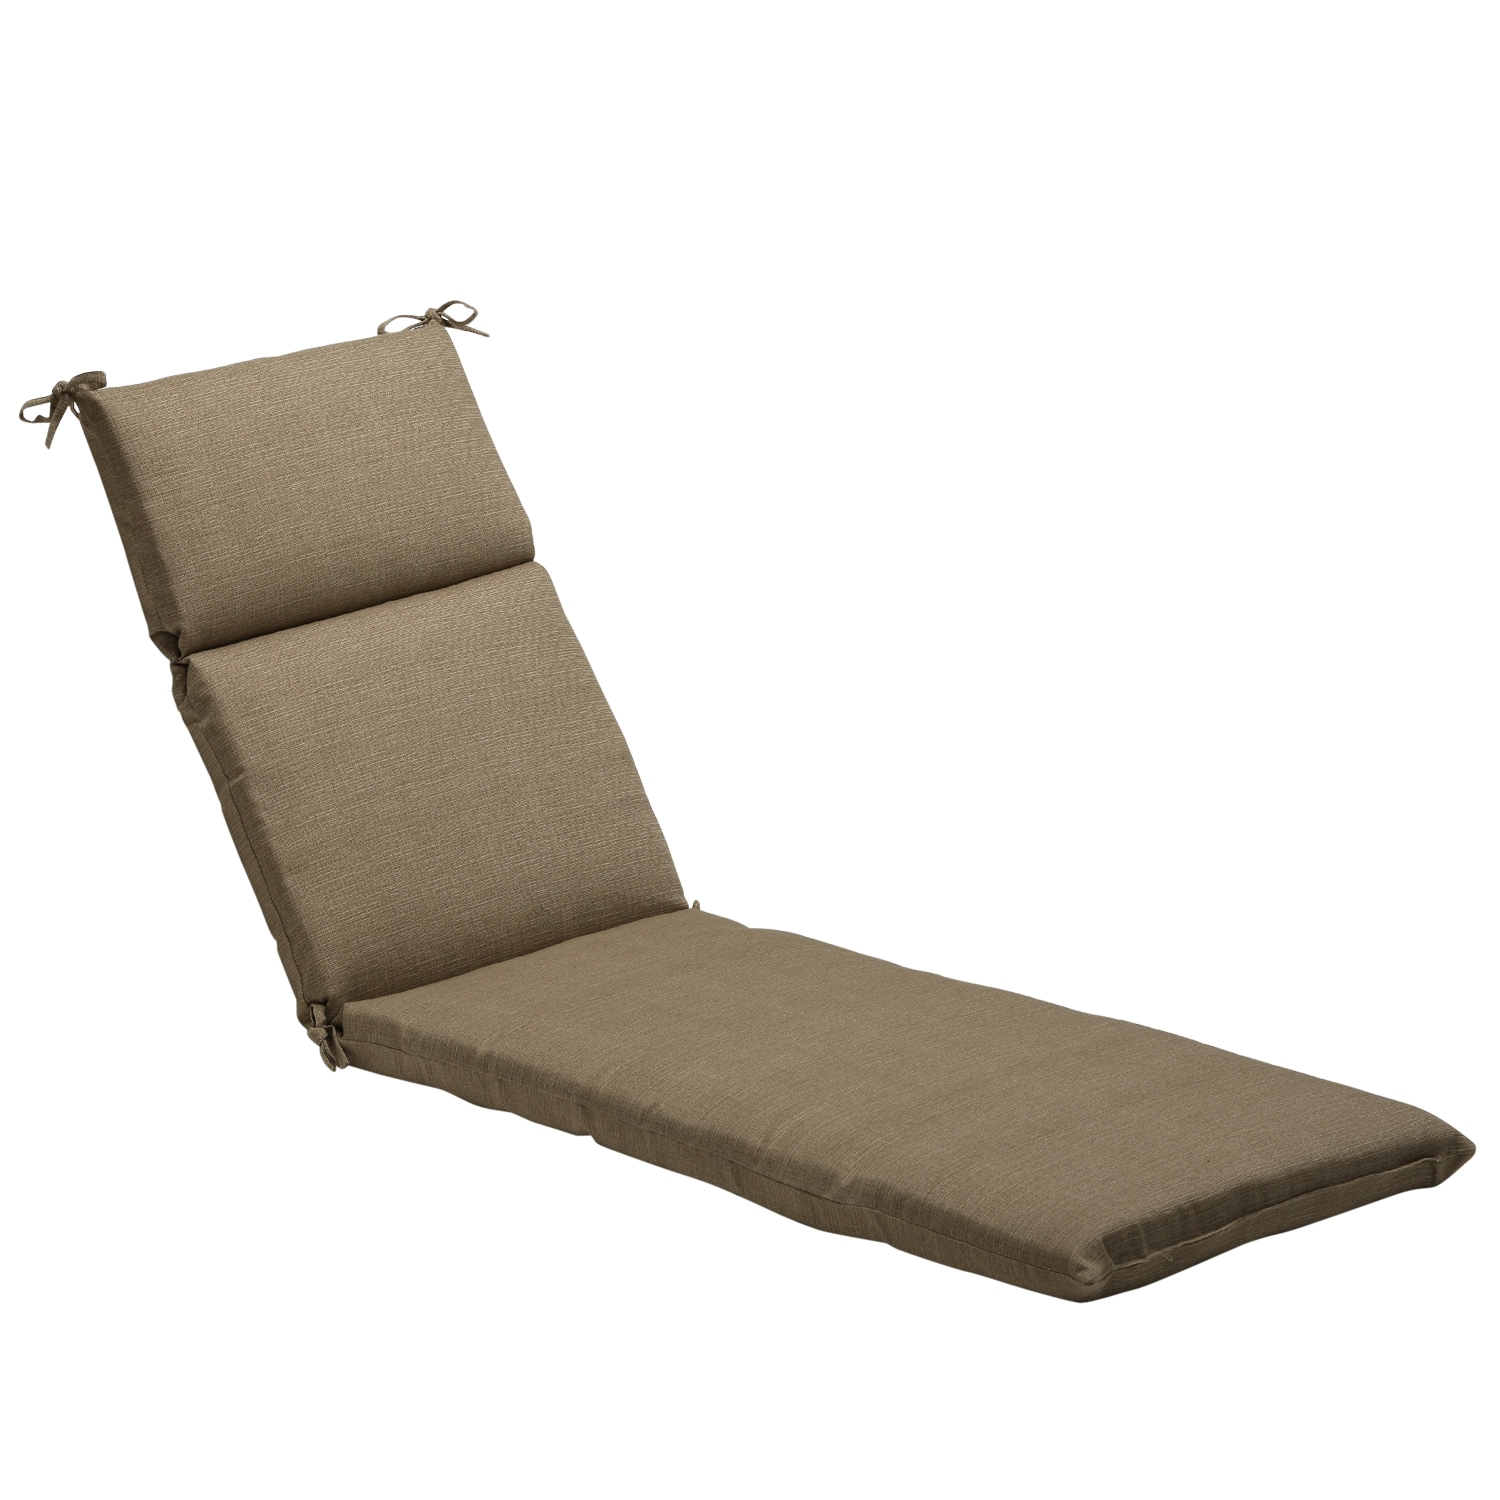 Solid taupe textured outdoor chaise lounge cushion for Chaise longue cushions